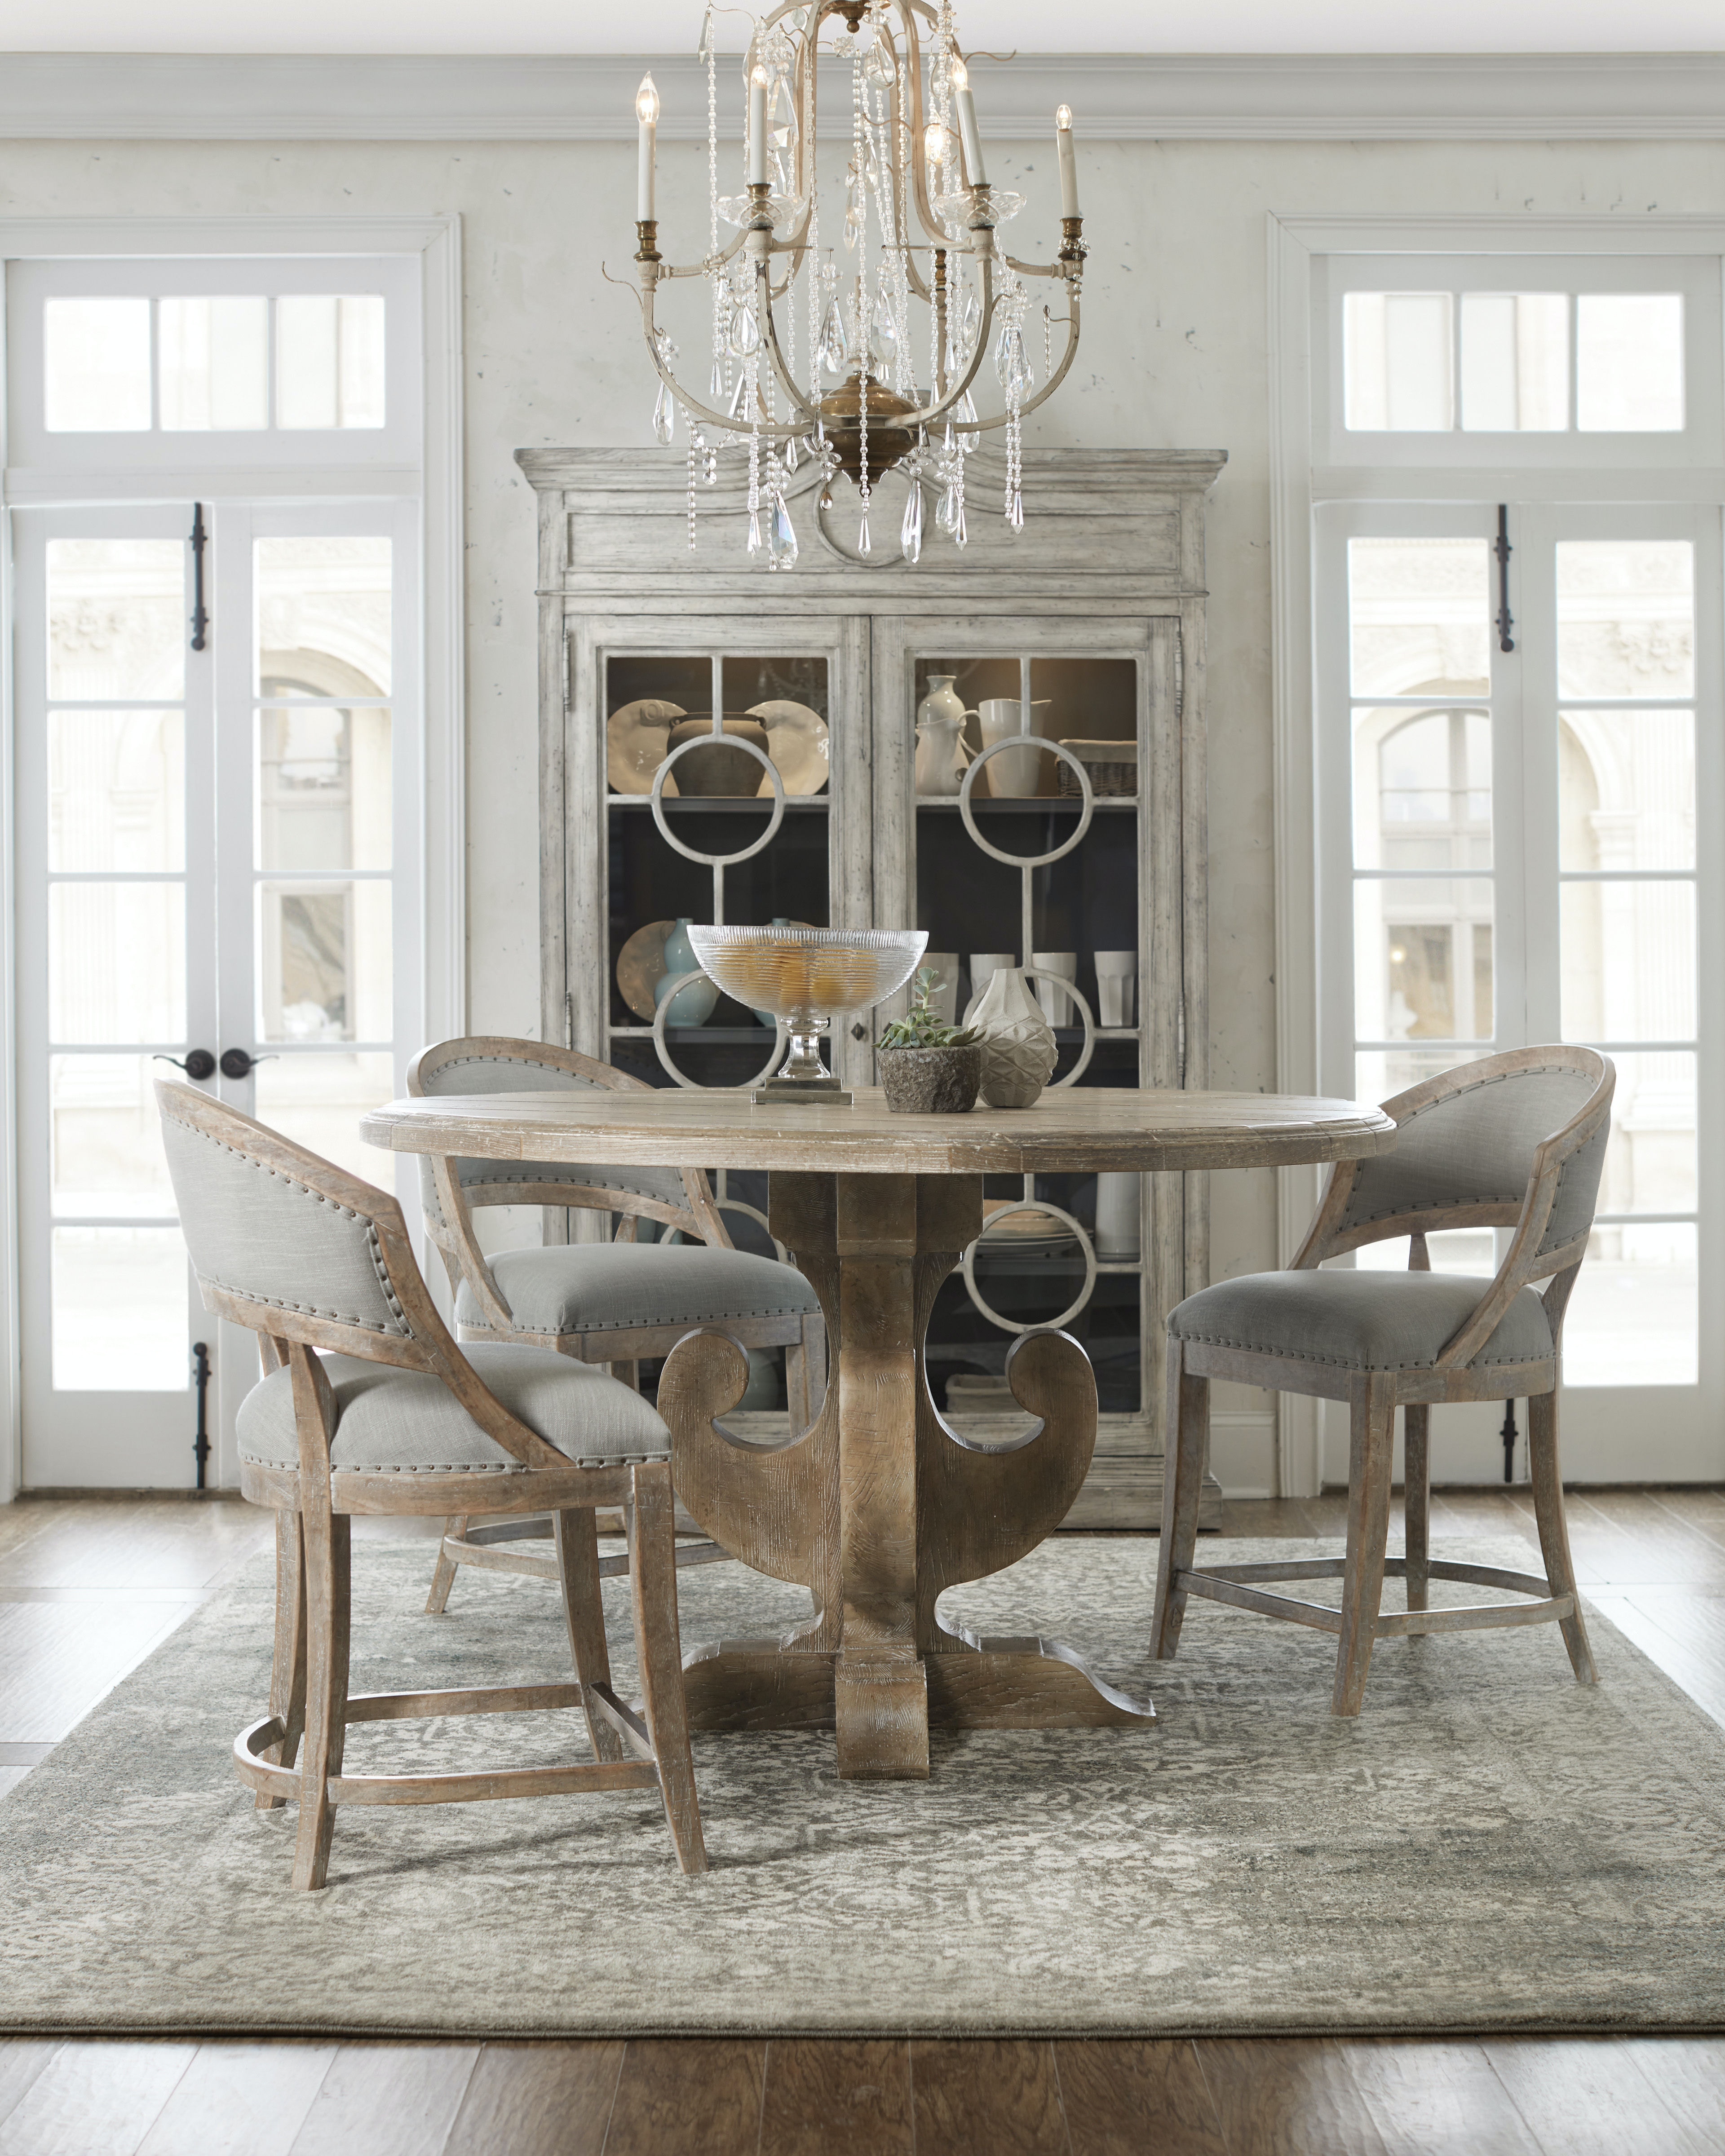 hooker furniture dining room boheme ascension 60in wood round hooker furniture boheme ascension 60in wood round dining table 5750 75213 mwd